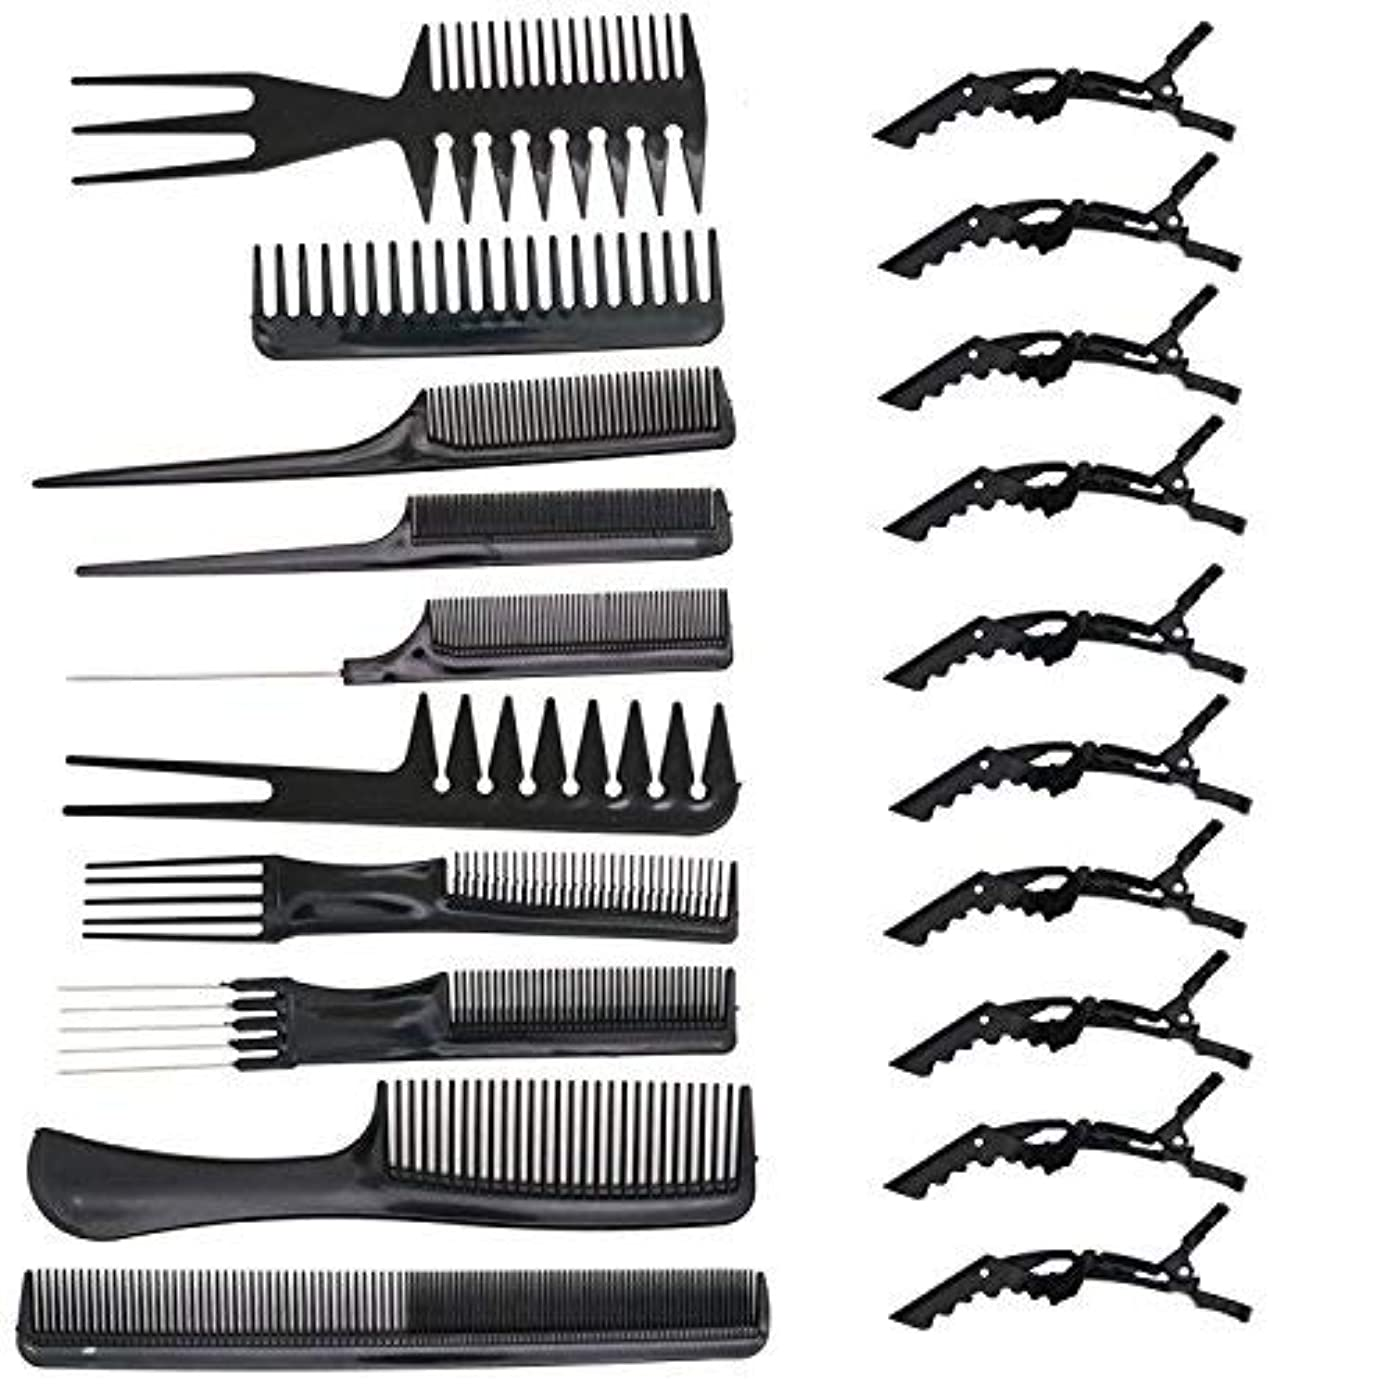 自治的見習い取り消すHUELE 10 Pcs Professional Hair Styling Comb with Styling Clips Hair Salon Styling Barbers Set Kit [並行輸入品]